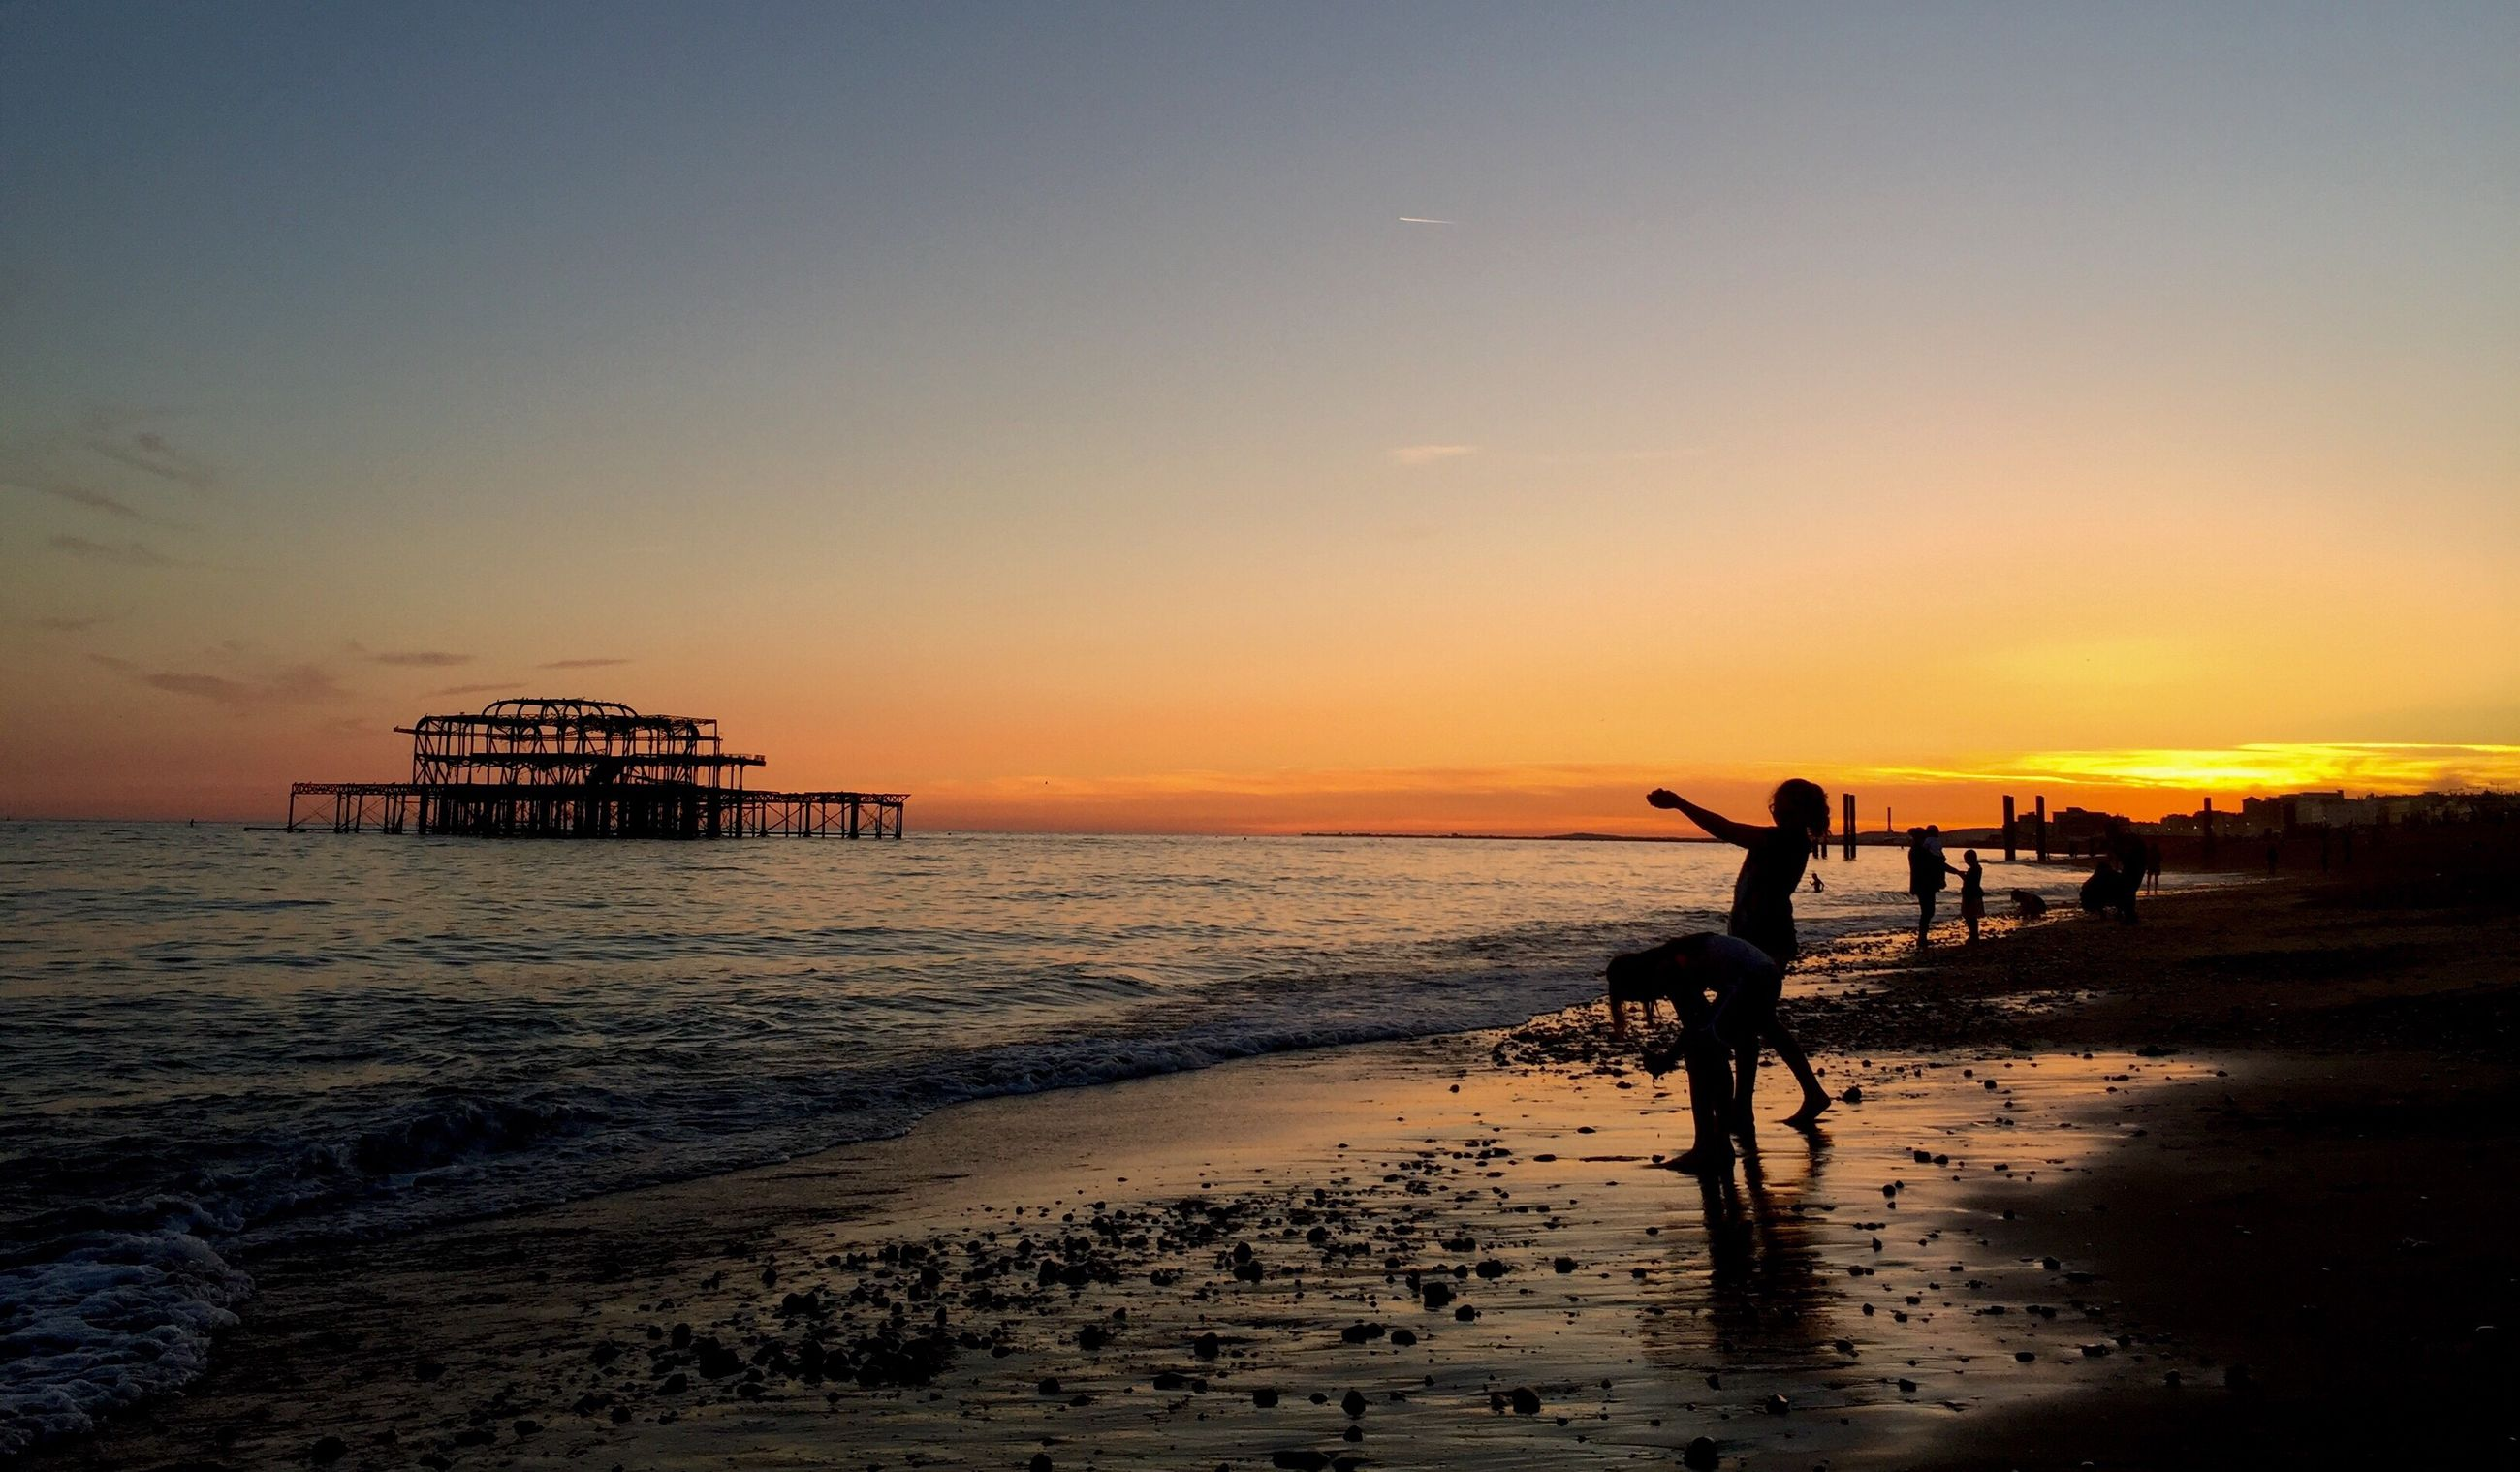 sea, beach, silhouette, water, sunset, horizon over water, scenics, shore, tranquil scene, tranquility, vacations, dusk, leisure activity, sky, togetherness, sand, beauty in nature, wave, full length, tourism, idyllic, nature, tourist, weekend activities, non-urban scene, orange color, outdoors